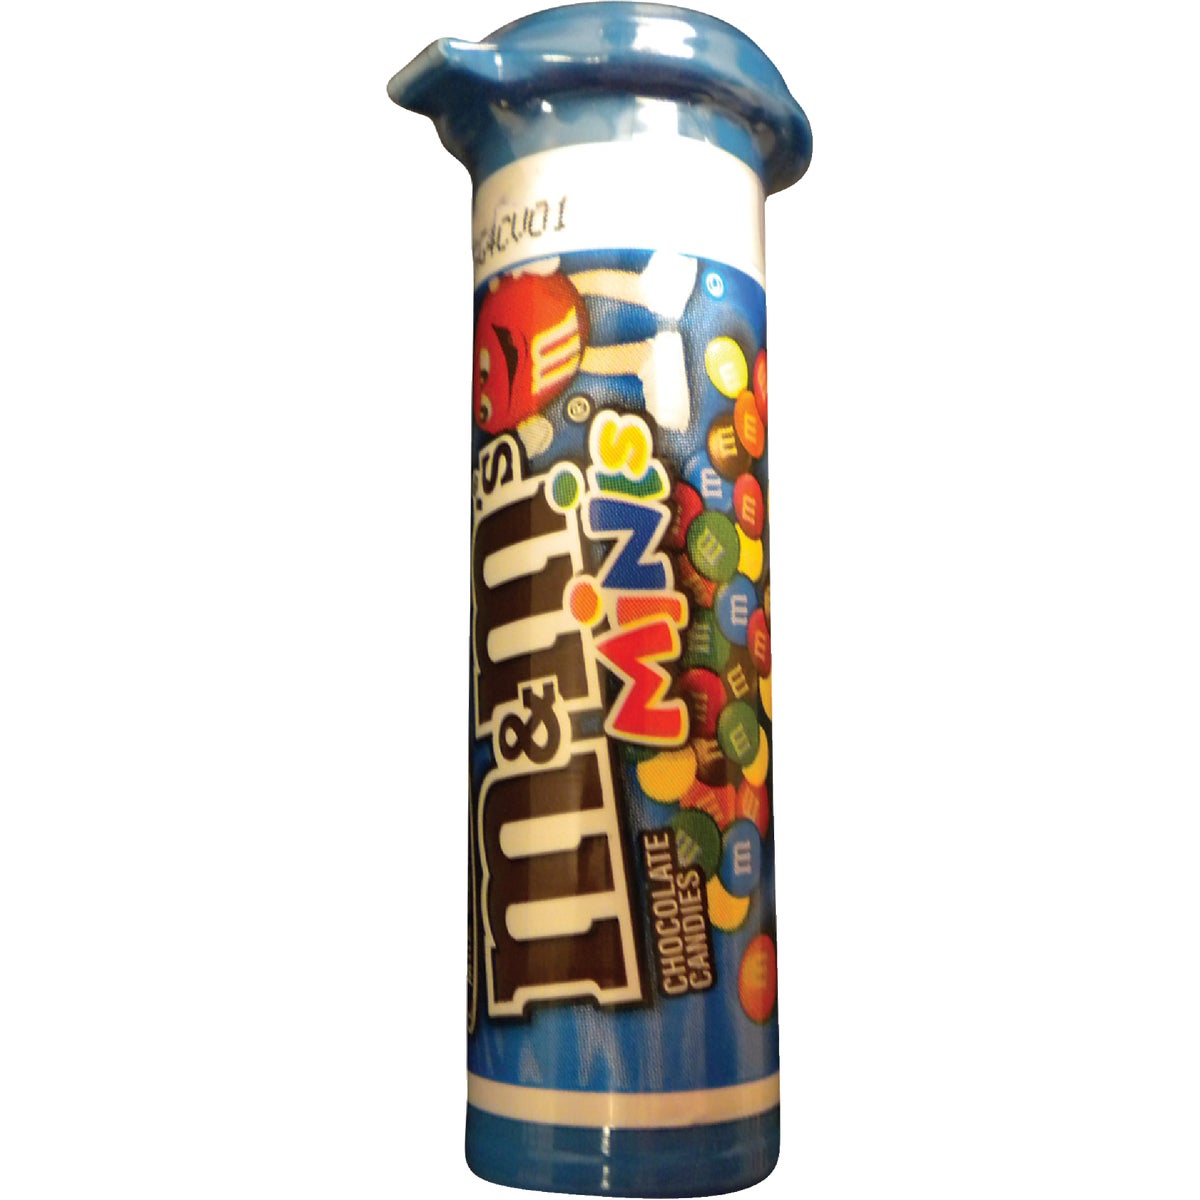 TUBE MINI M&M'S - 3231 by Liberty Distribution